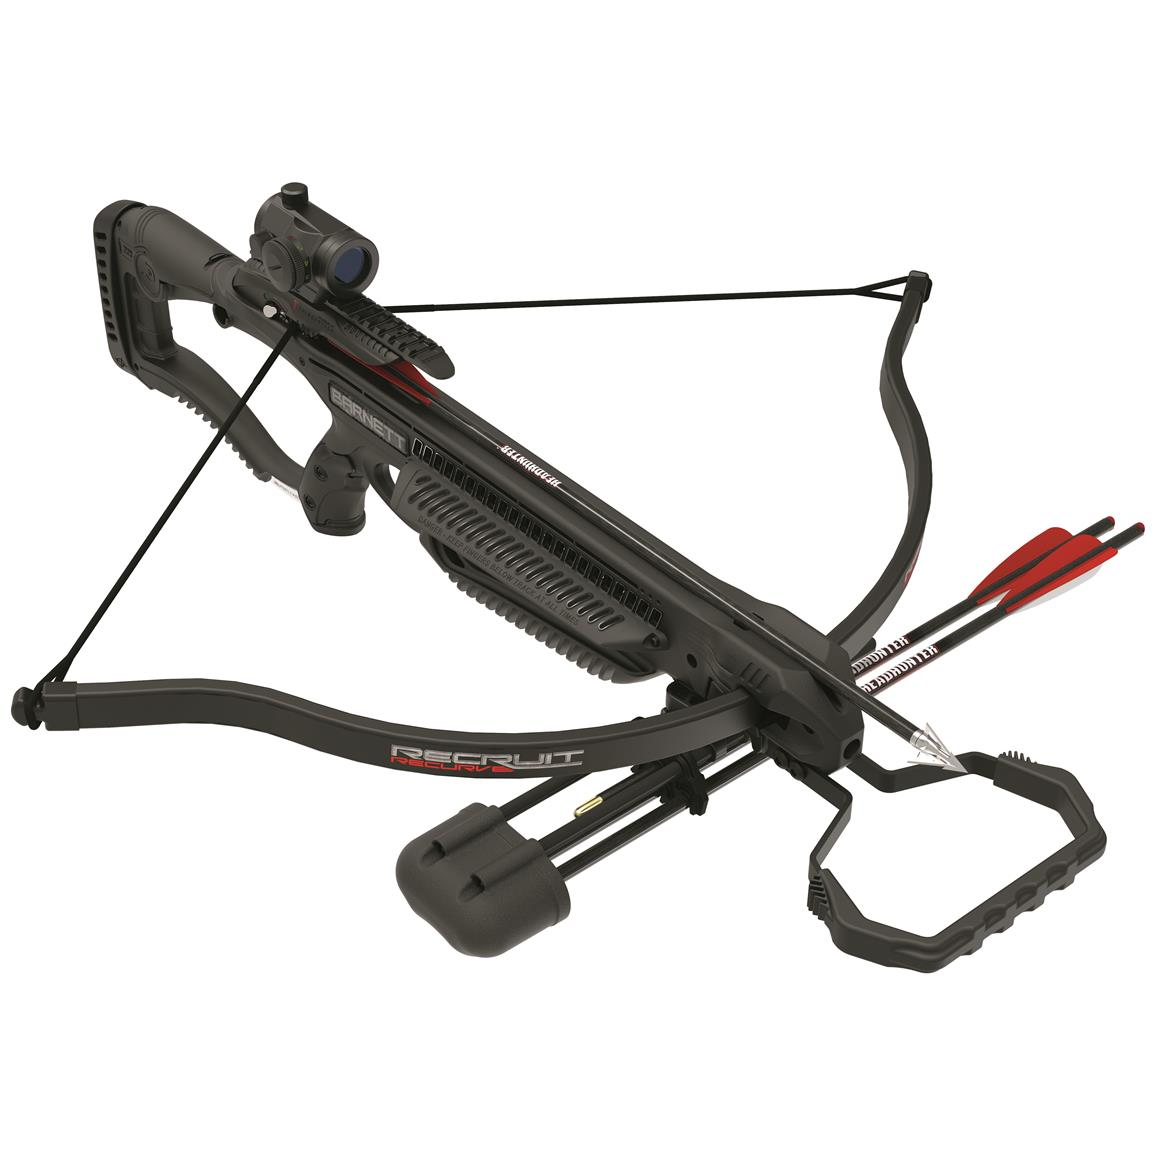 Barnett Recruit Recurve Crossbow